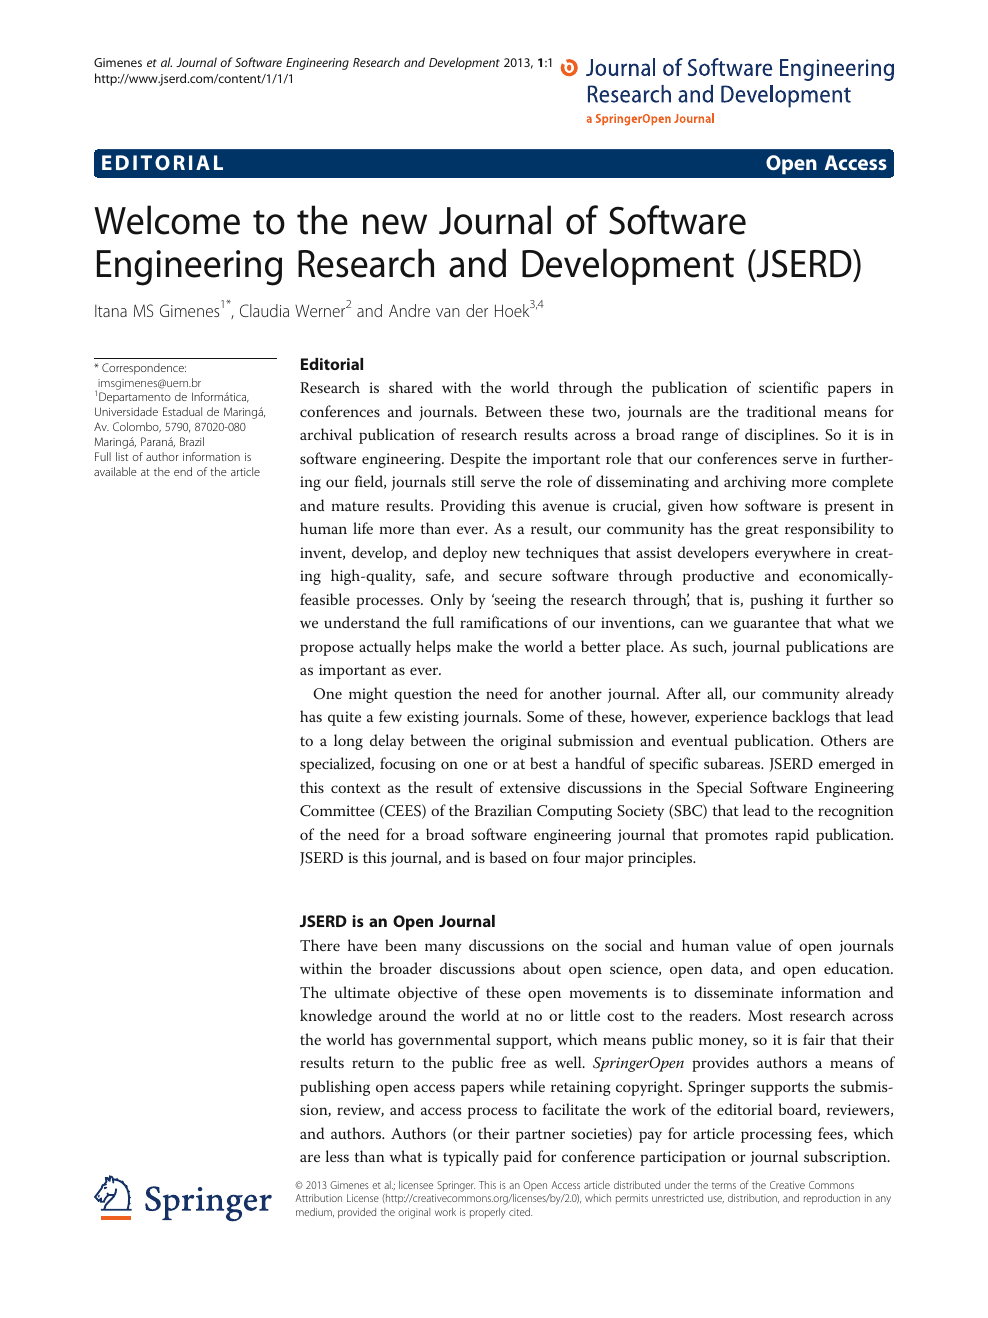 software engineer research paper